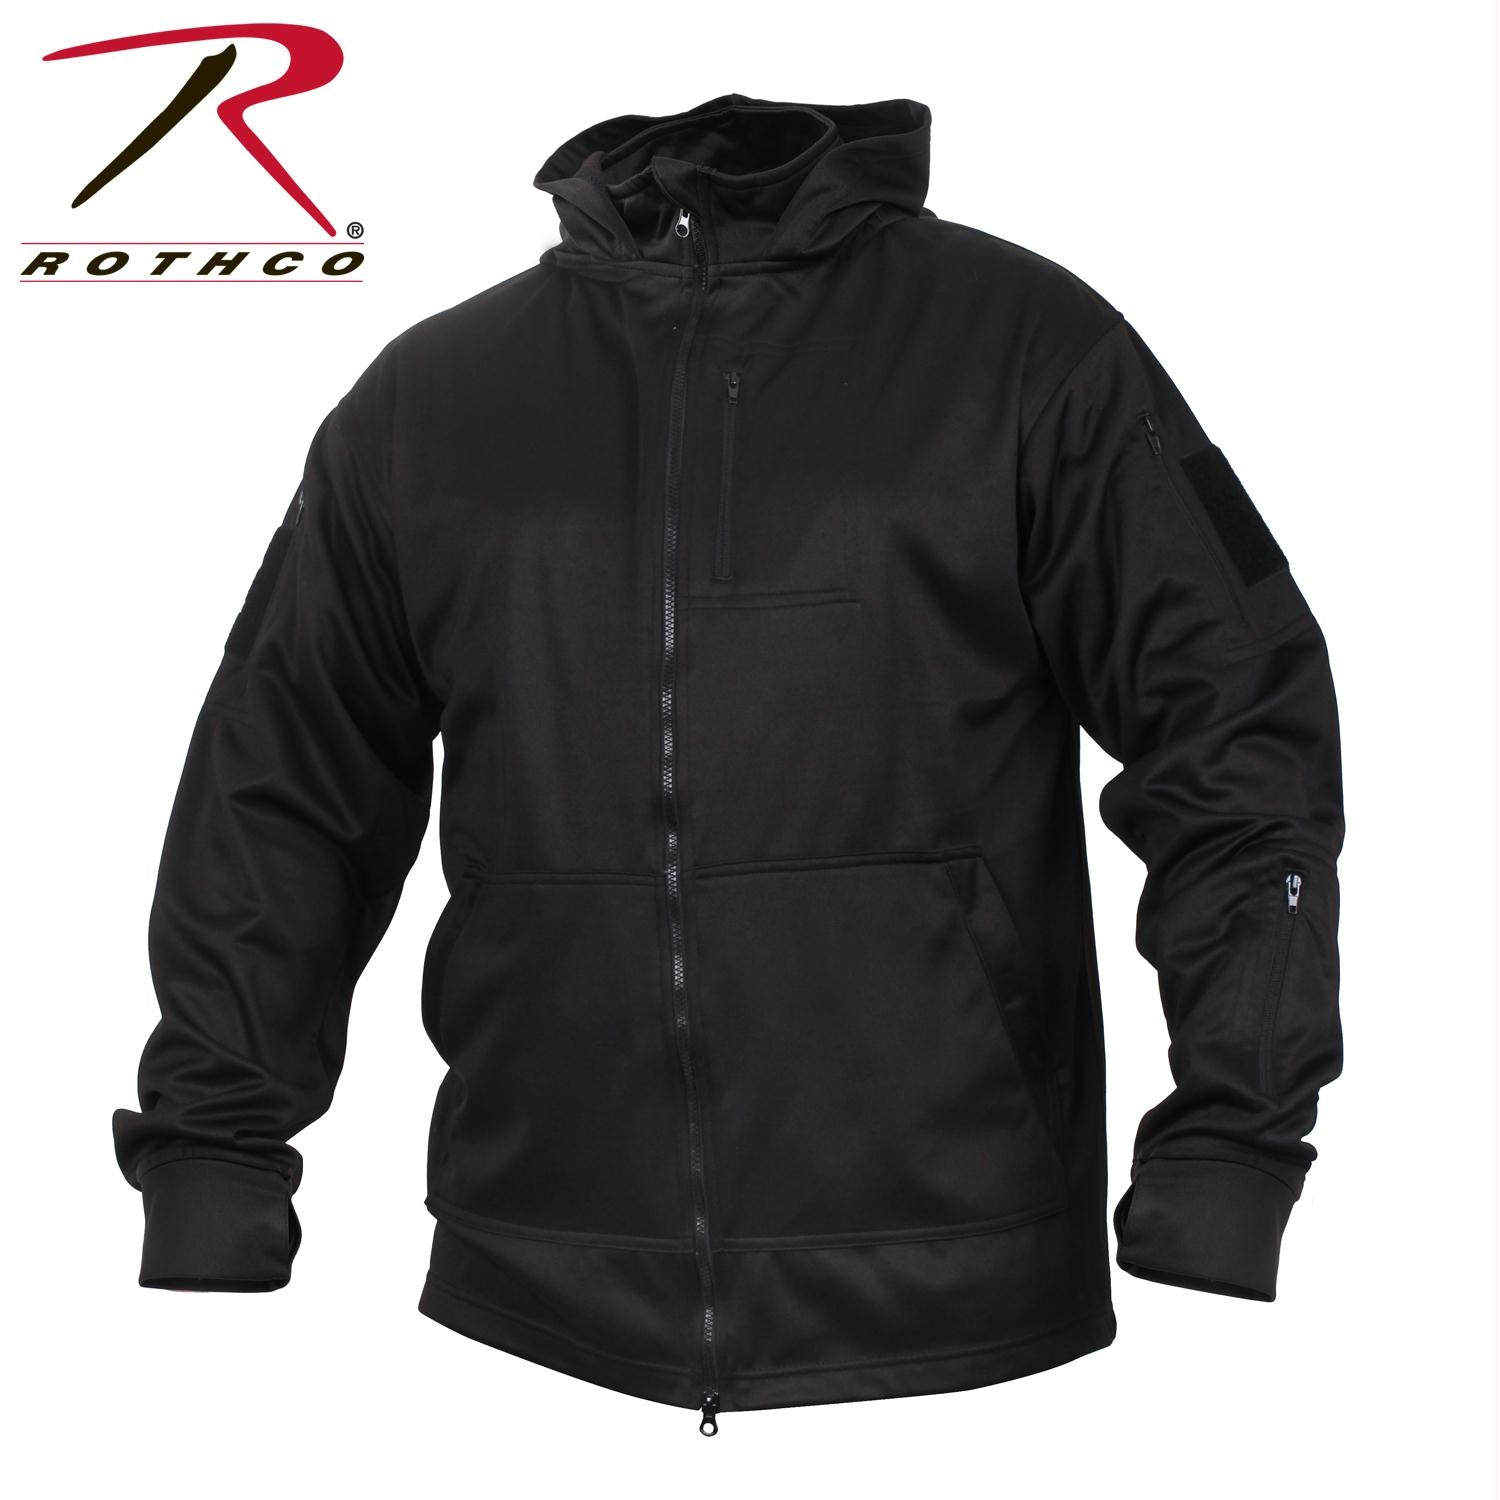 Rothco Tactical Zip Up Hoodie - Black / L